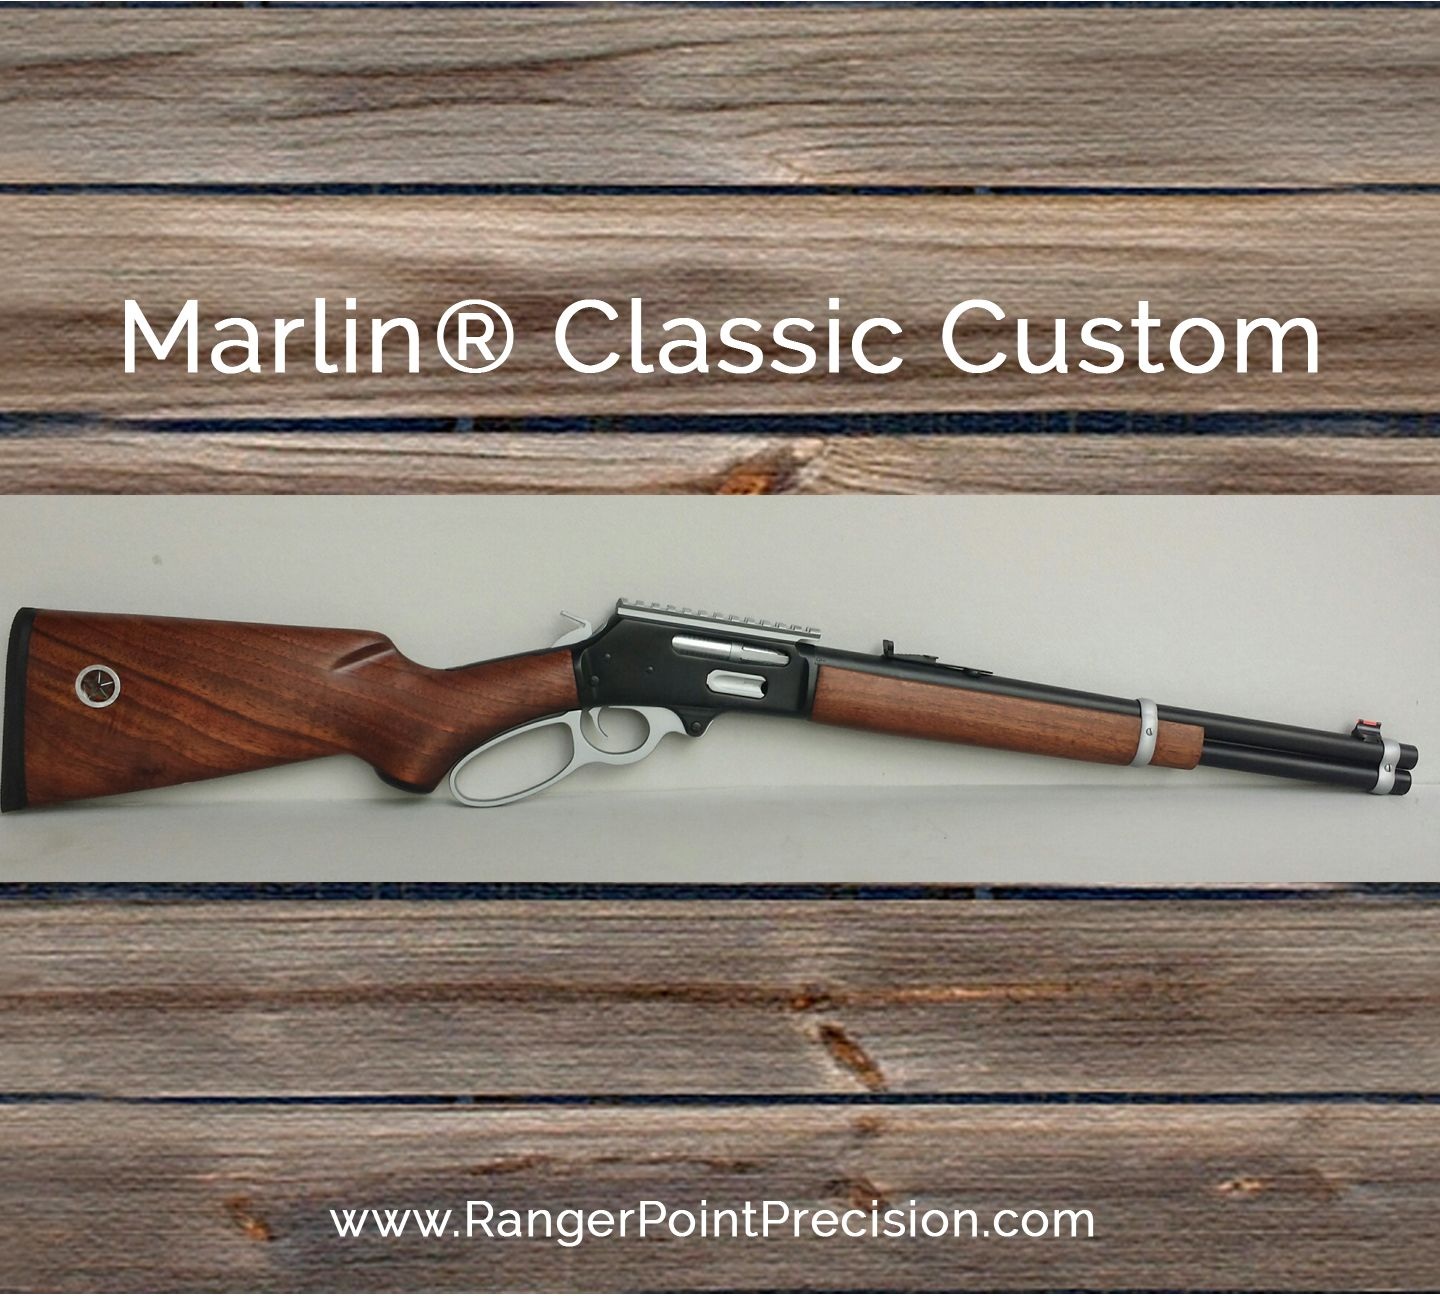 New Marlin Classic Custom Lever Action Package Any Caliber Any Model Platform Lever Action Marlin Lever Action Marlin